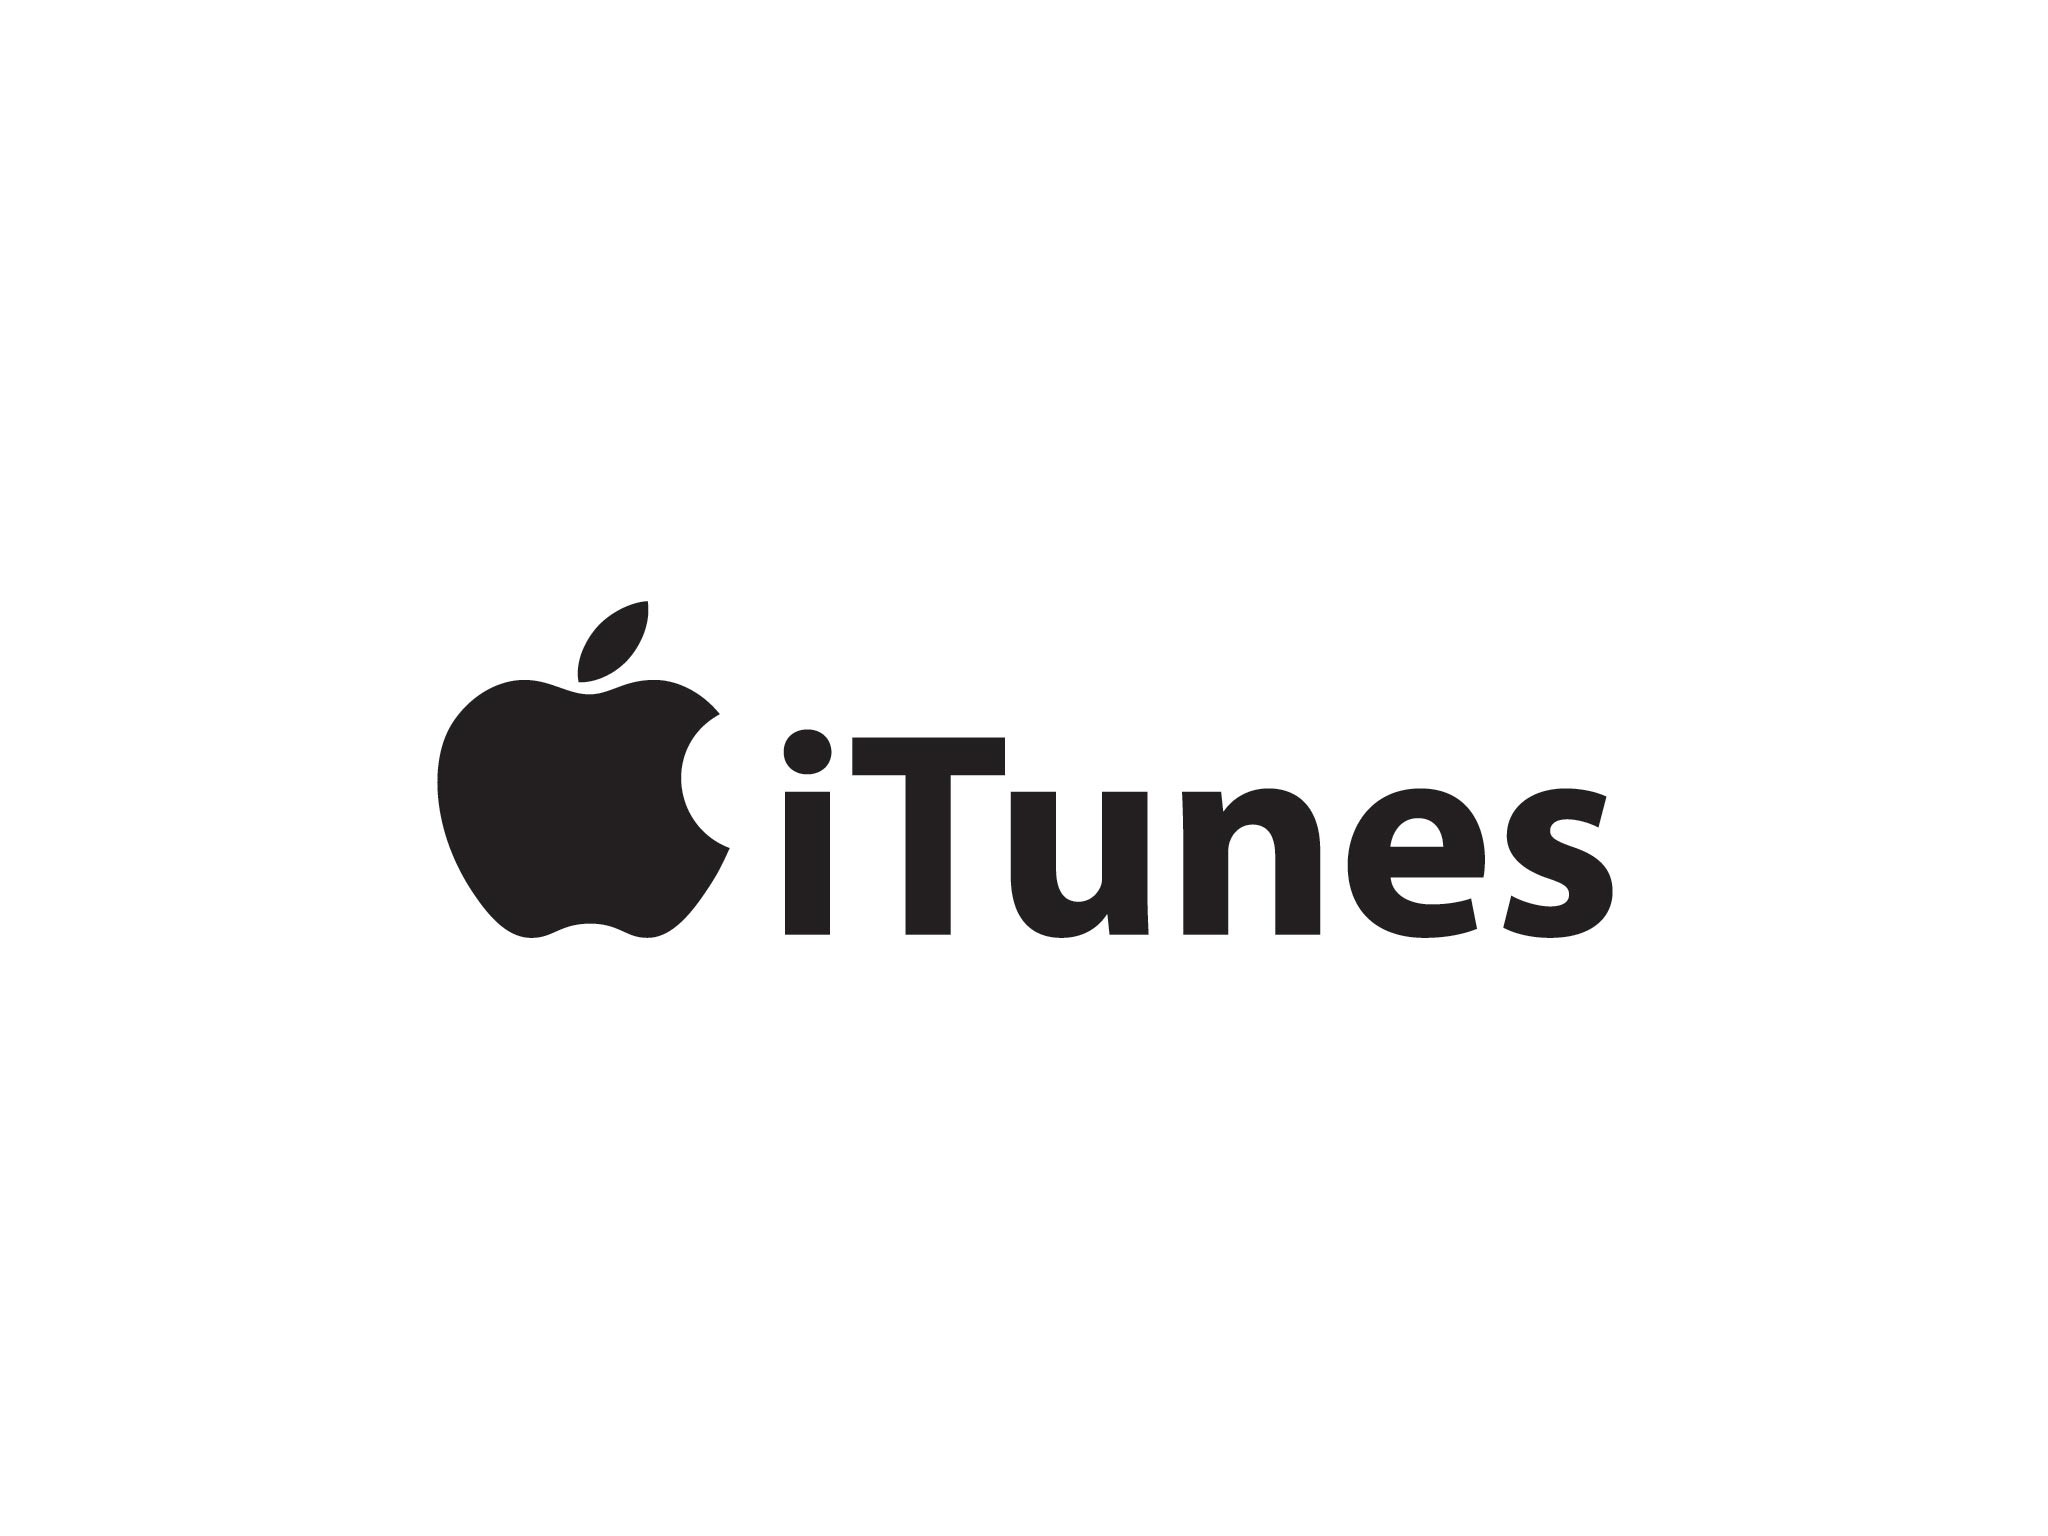 Play with Apple Music